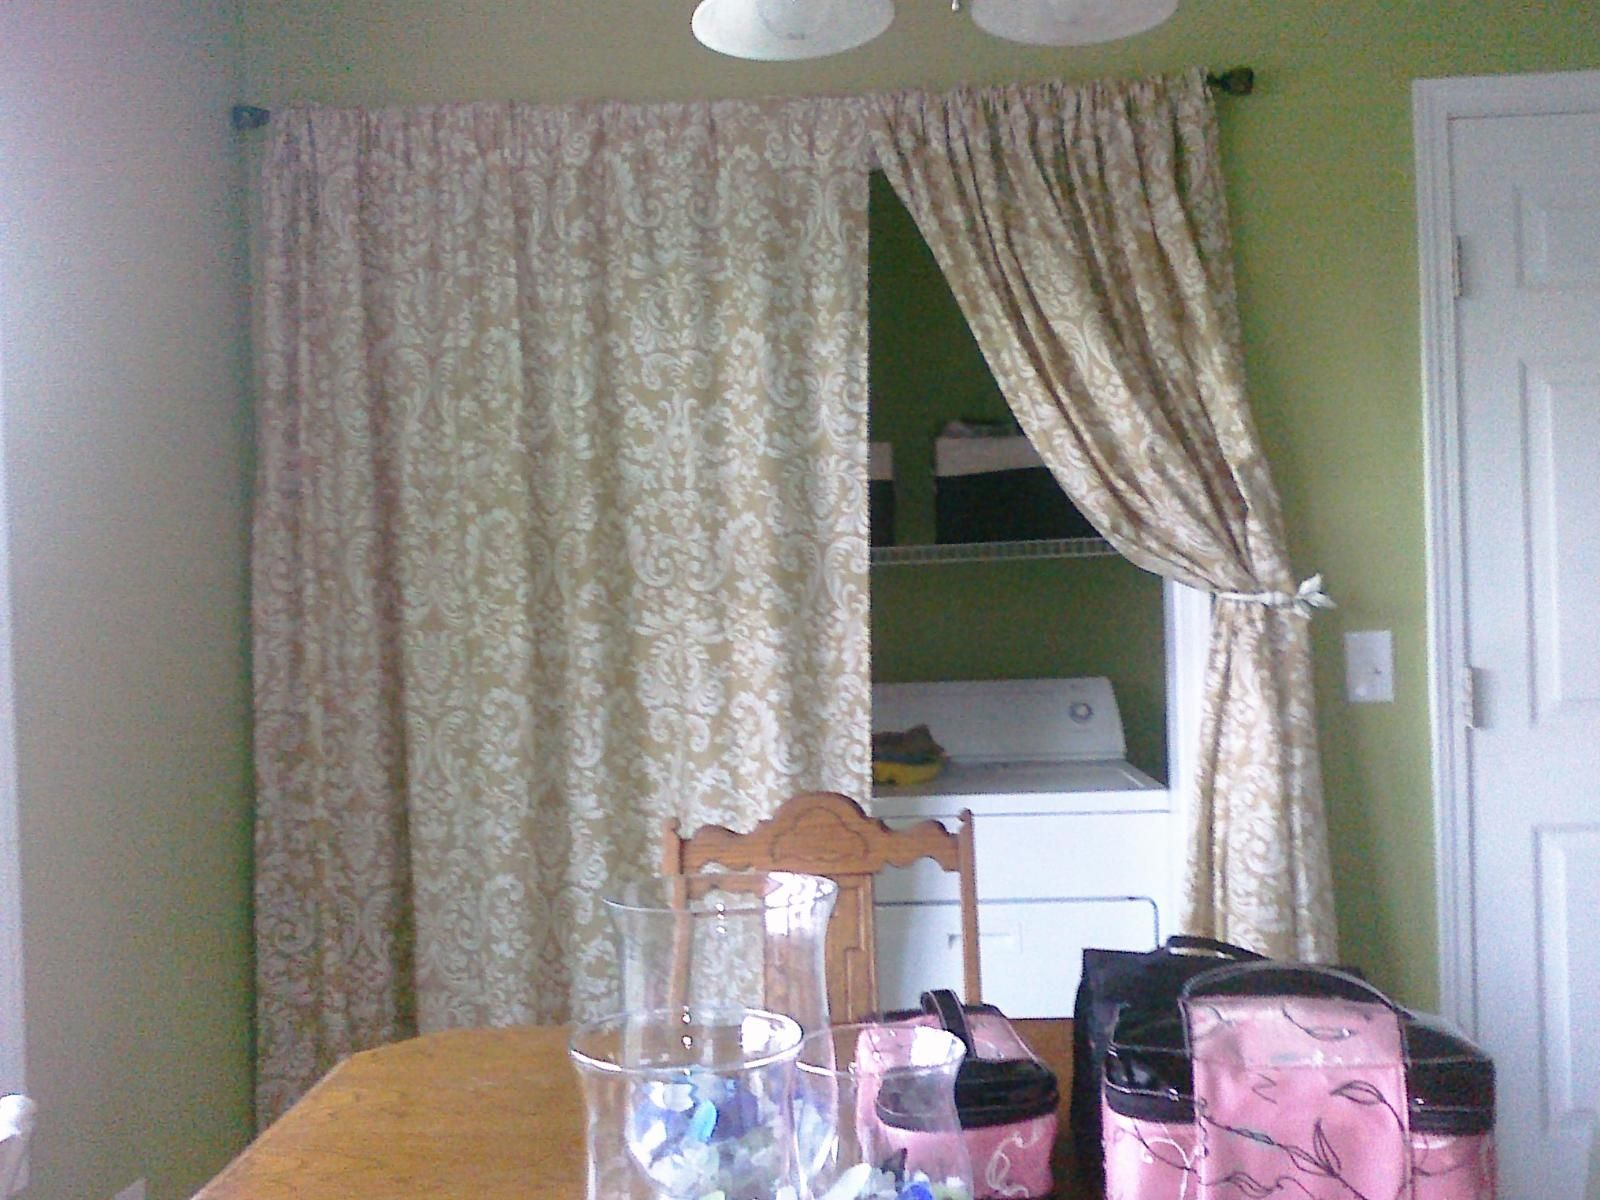 Laundry Room Vintage Laundry Room Curtain Ideas With Decorative